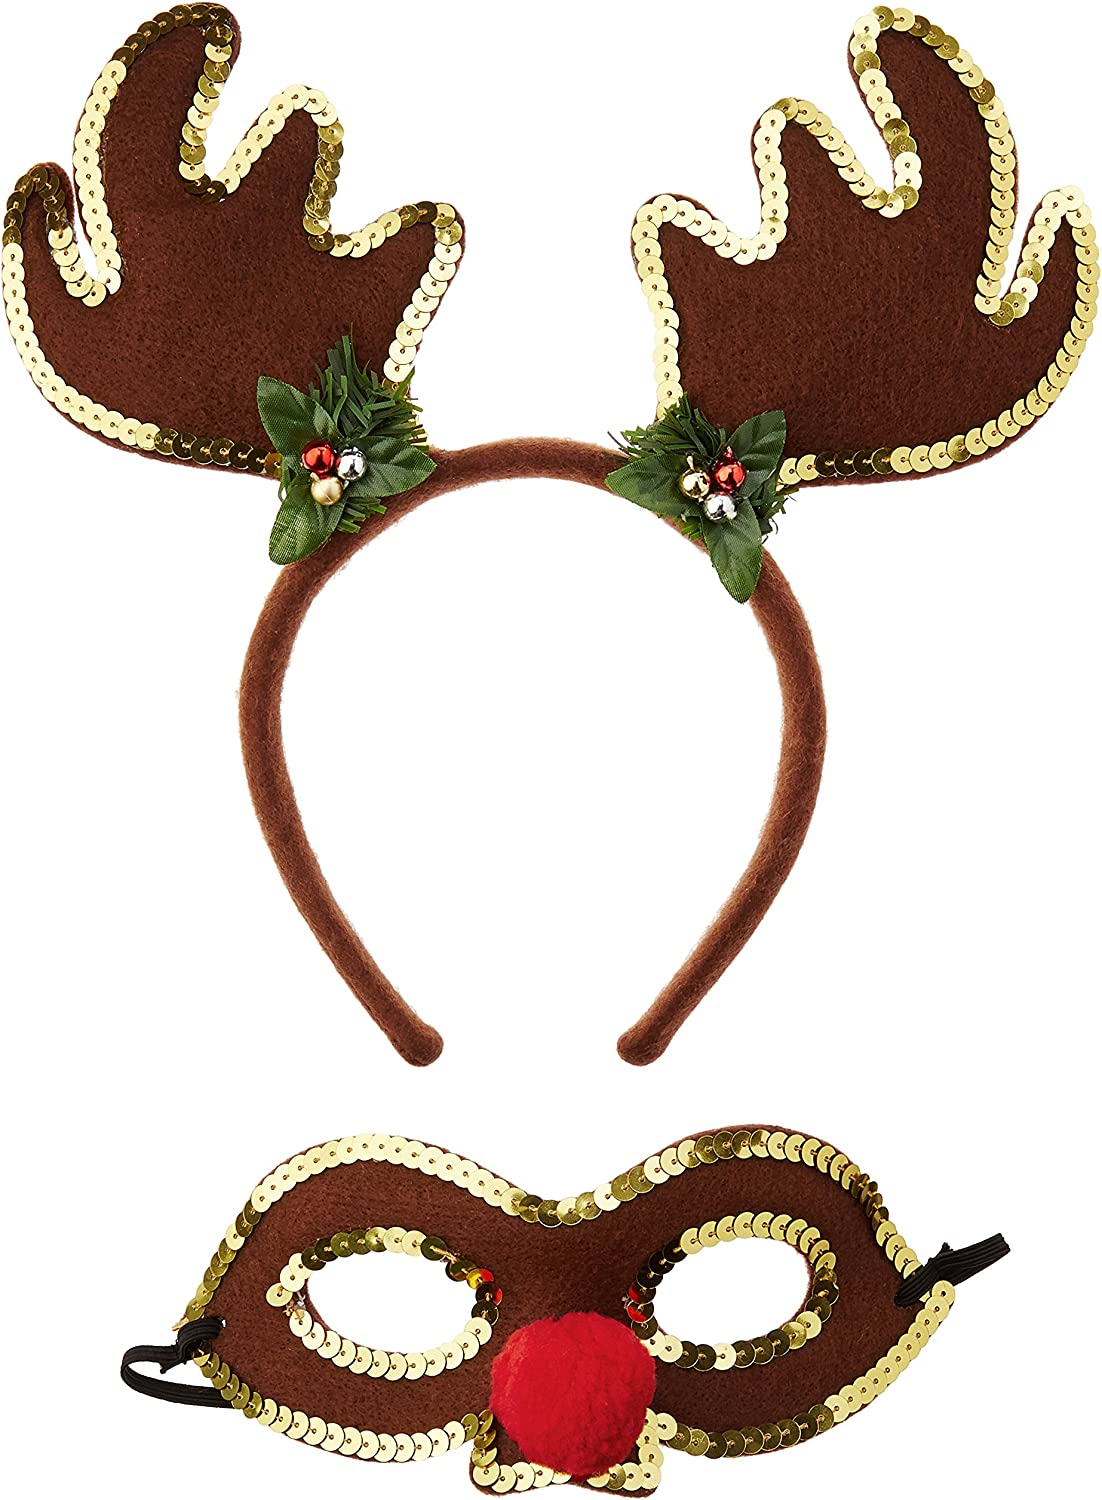 Jacobson Hat Company Halloween Costume Accessory Ladies Deluxe Steampunk Eye Patch